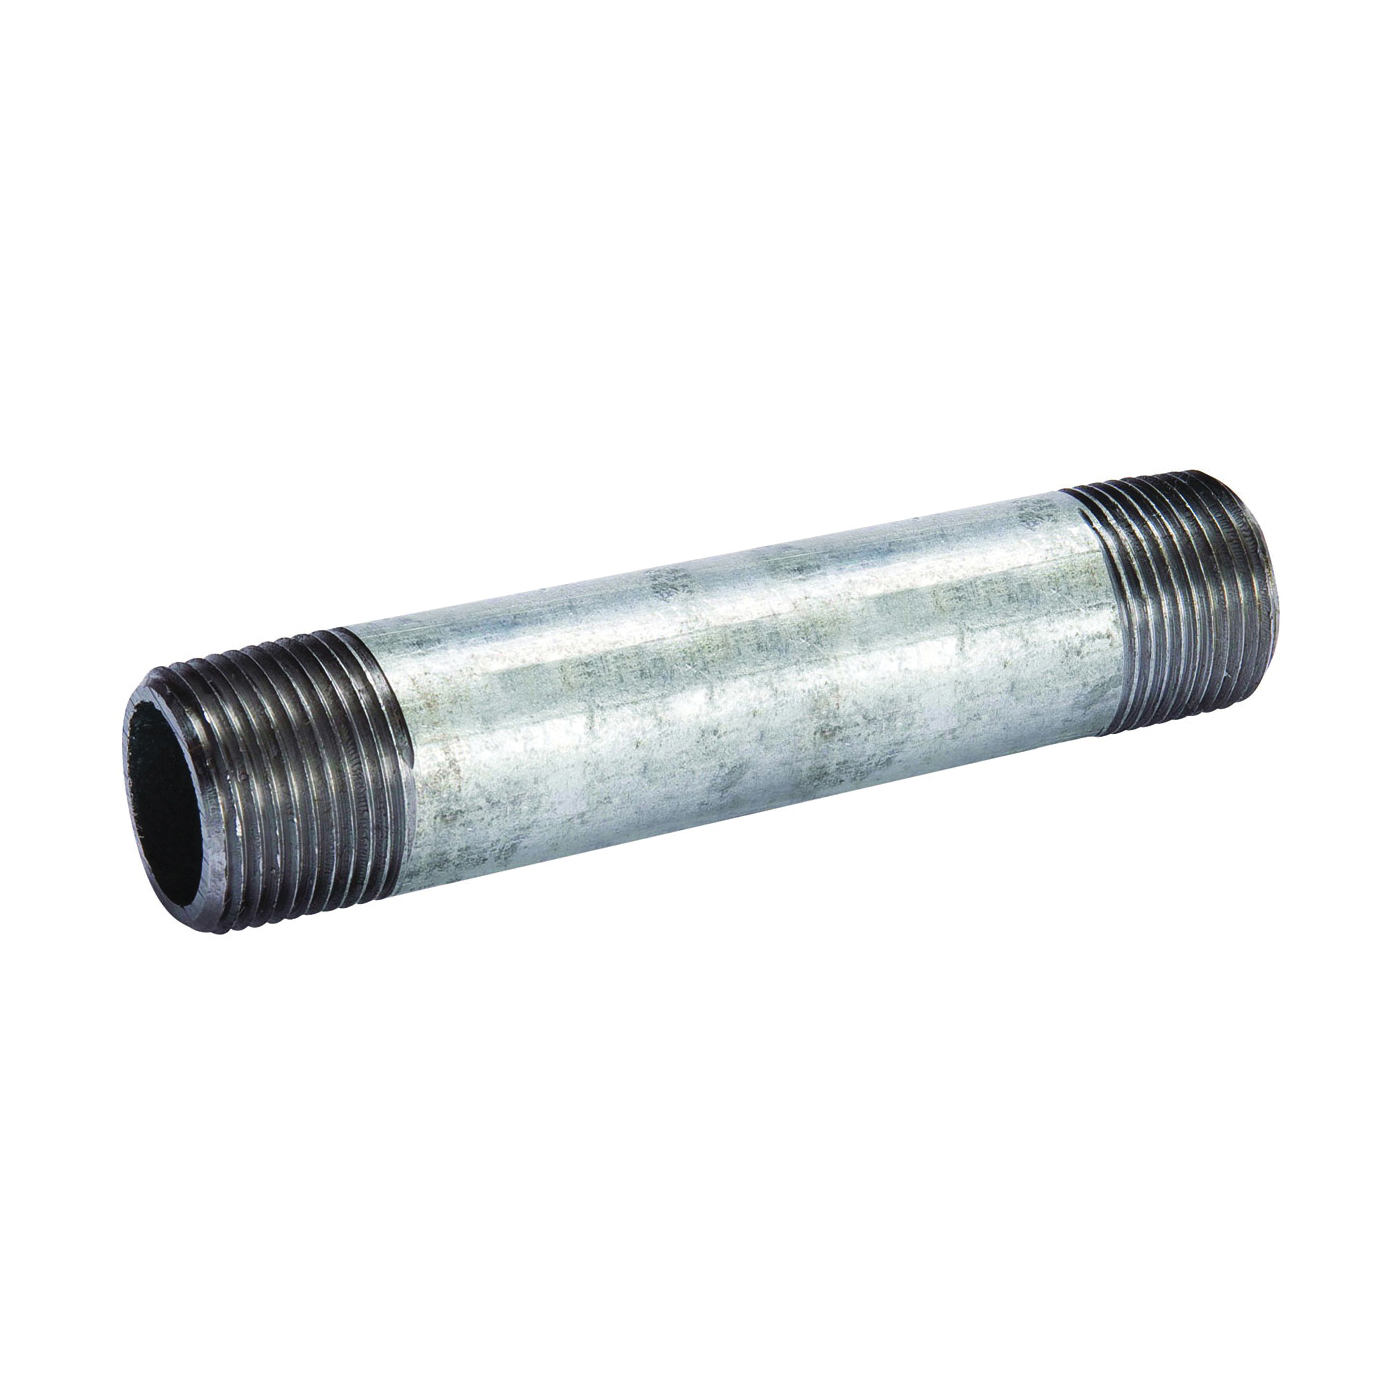 Picture of B & K 570-060BC Pipe Nipple, 3 in, Threaded, Galvanized Steel, SCH 40 Schedule, 6 in L